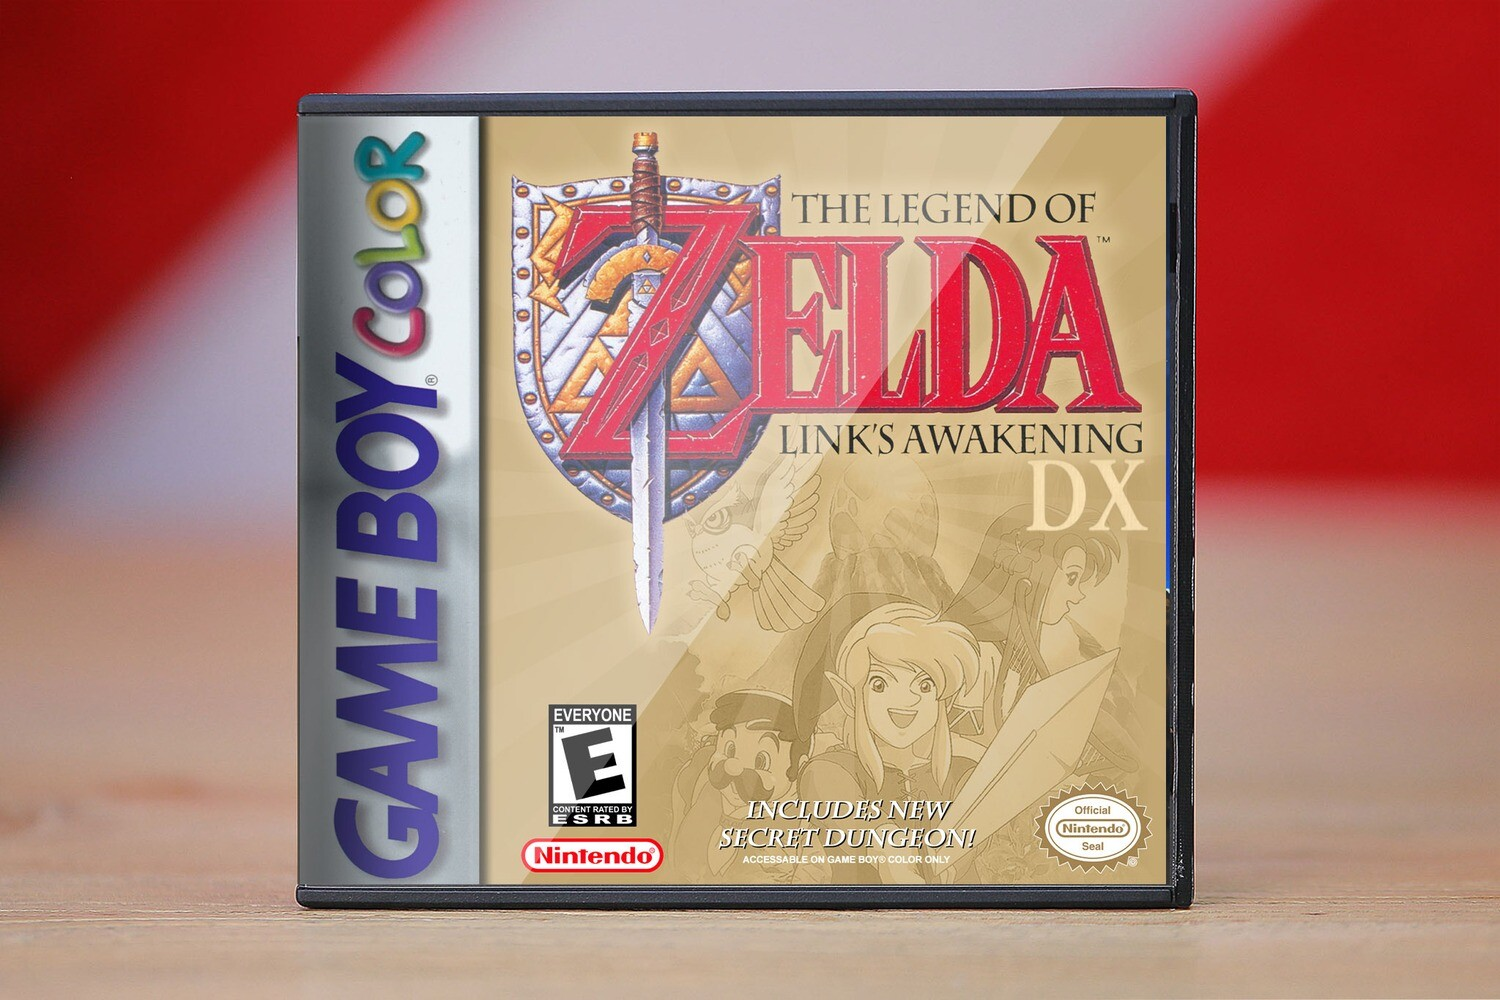 The Legend of Zelda: Links Awakening (Game Boy)